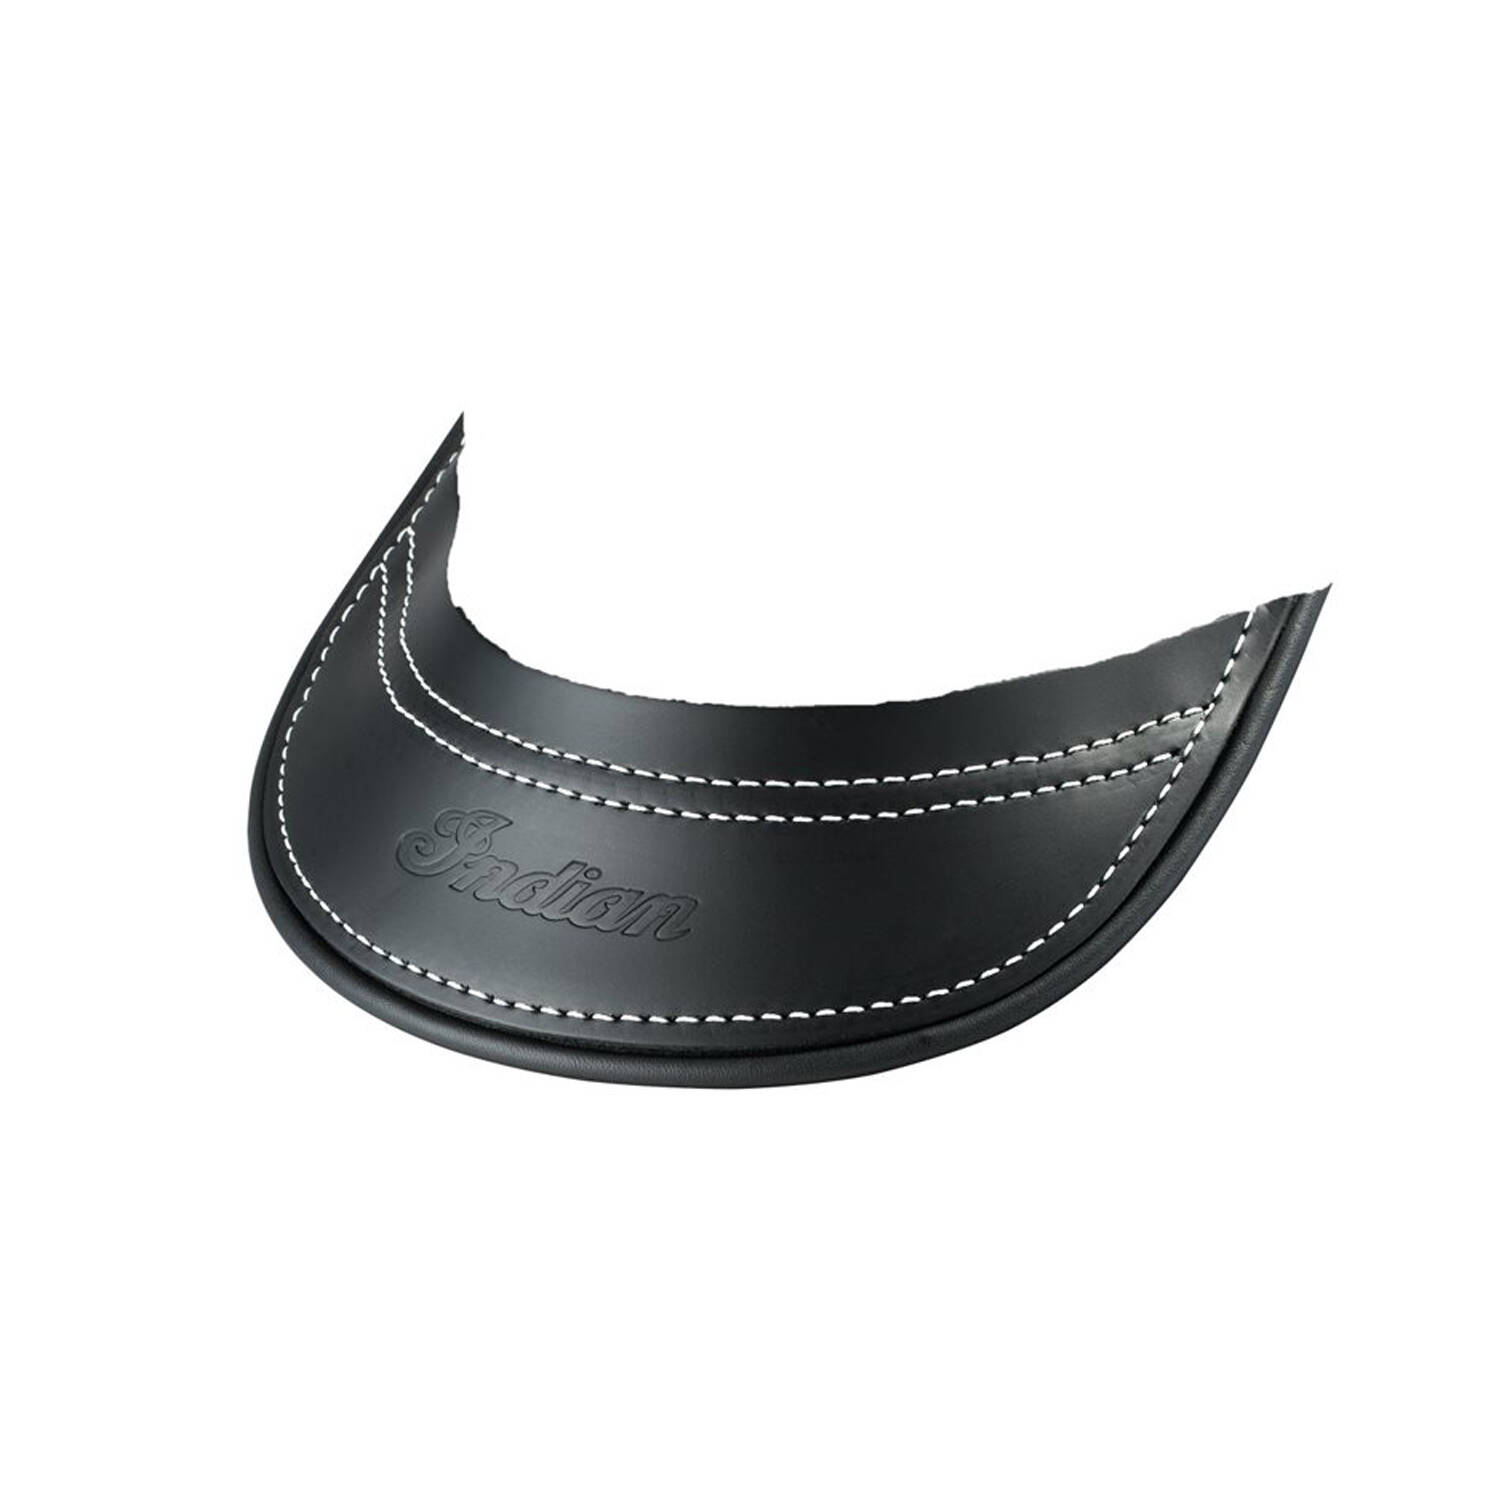 Genuine Leather Front Mud Flap - Black